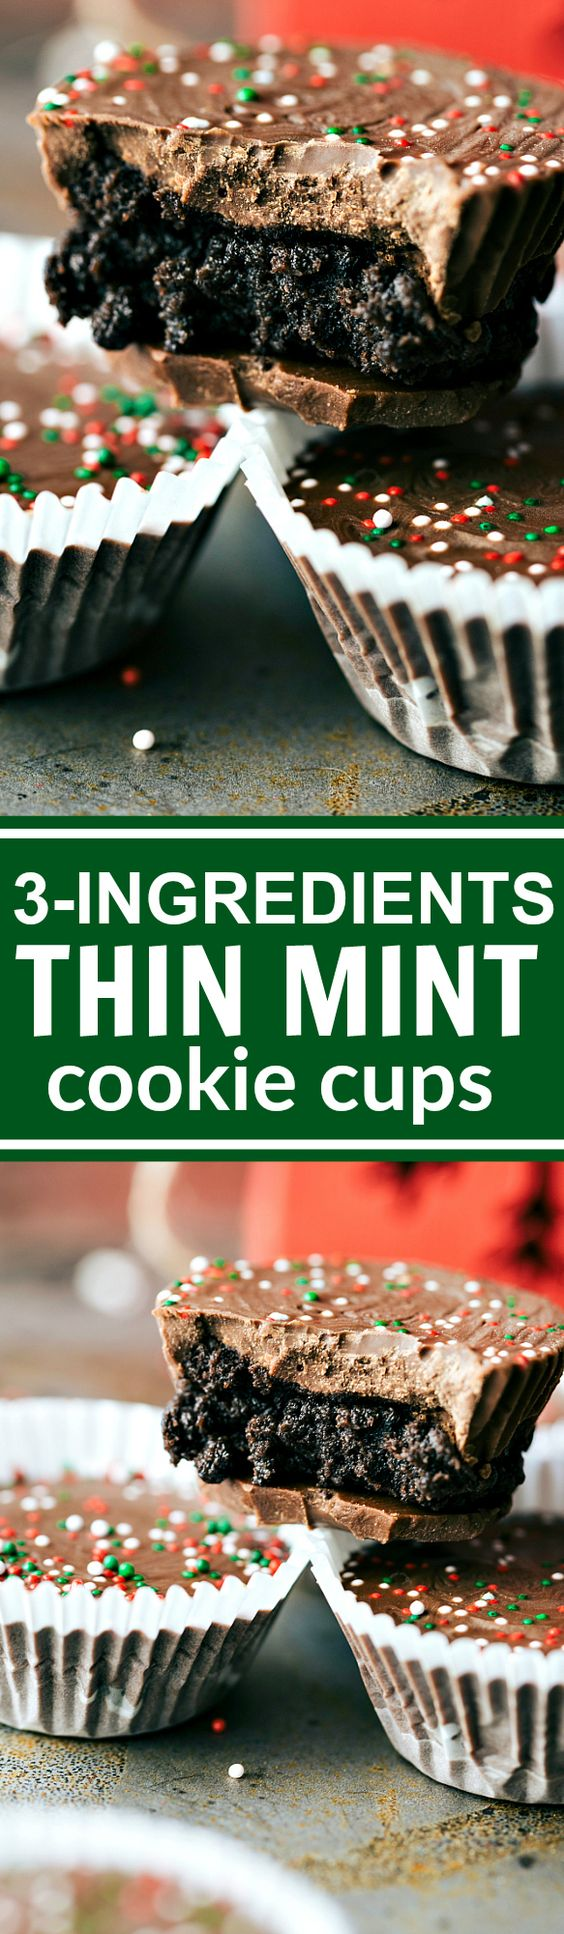 THREE INGREDIENT easy, no-bake Chocolate THIN MINT cups Recipe via Chelsea's Messy Apron - The BEST Christmas Cookies, Fudge, Candy, Barks and Brittles Recipes - Favorites for Holiday Treats Gift Plates and Goodies Bags!